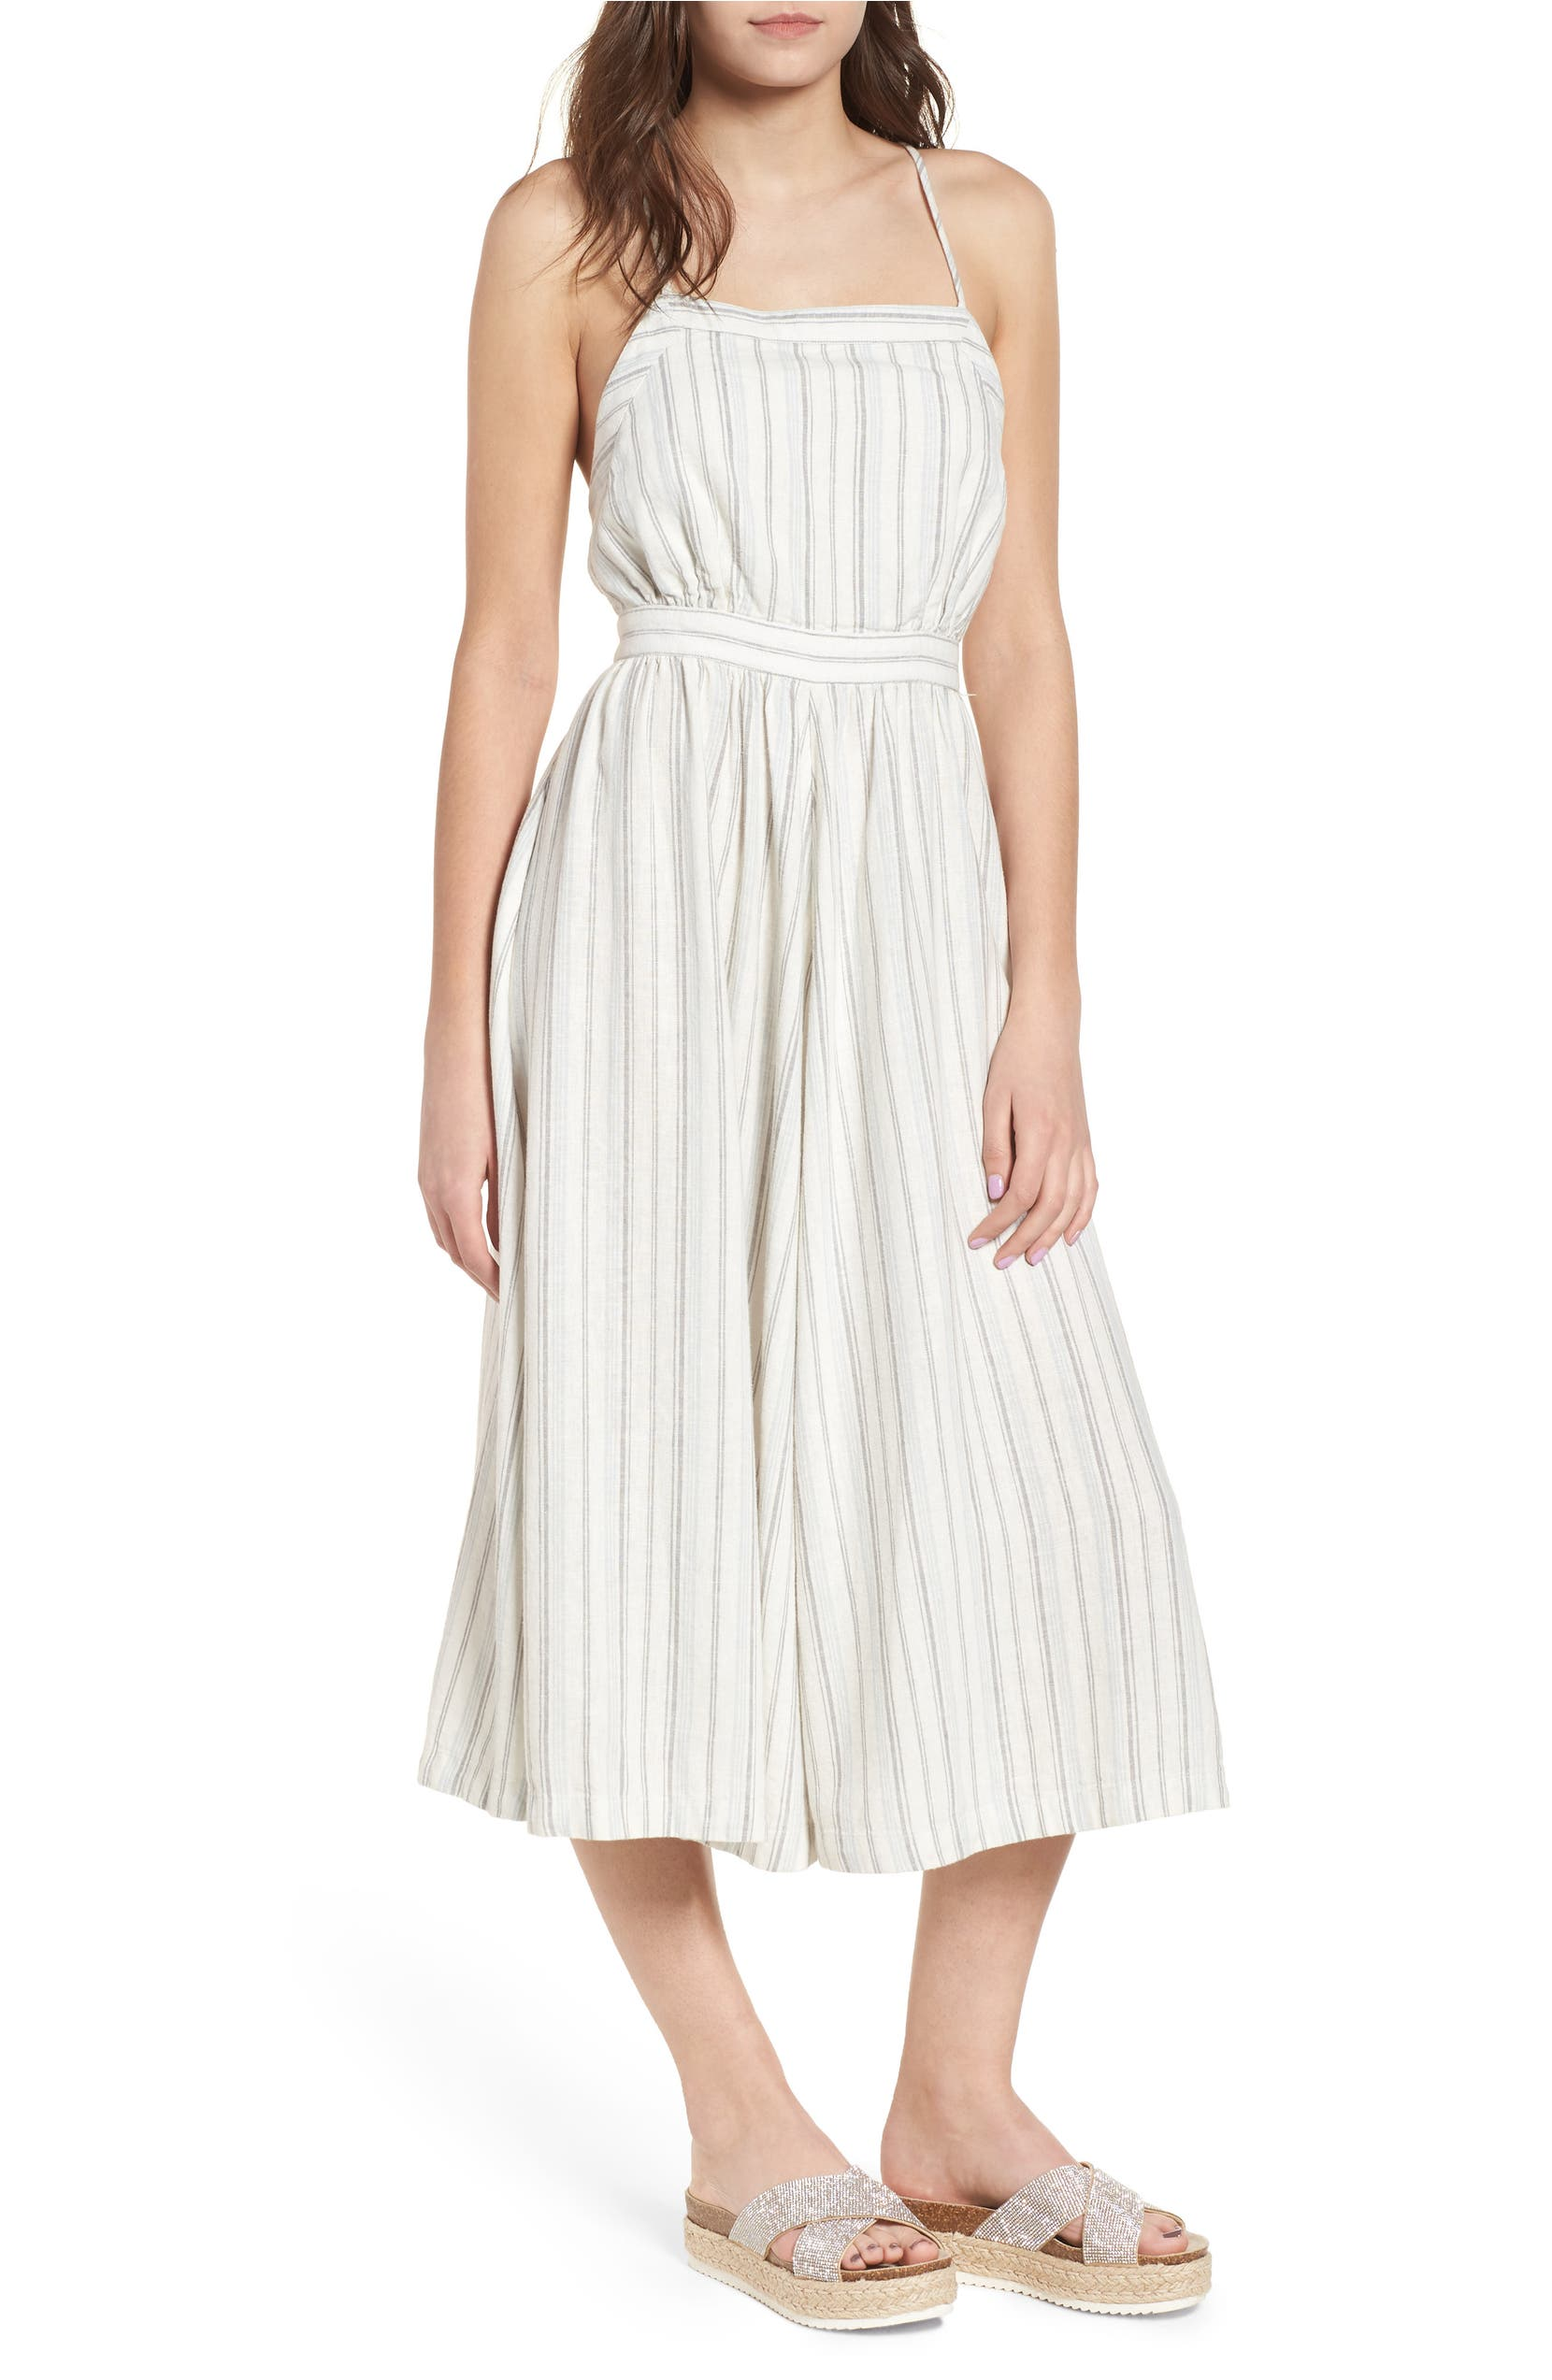 BP Stripe Apron Dress